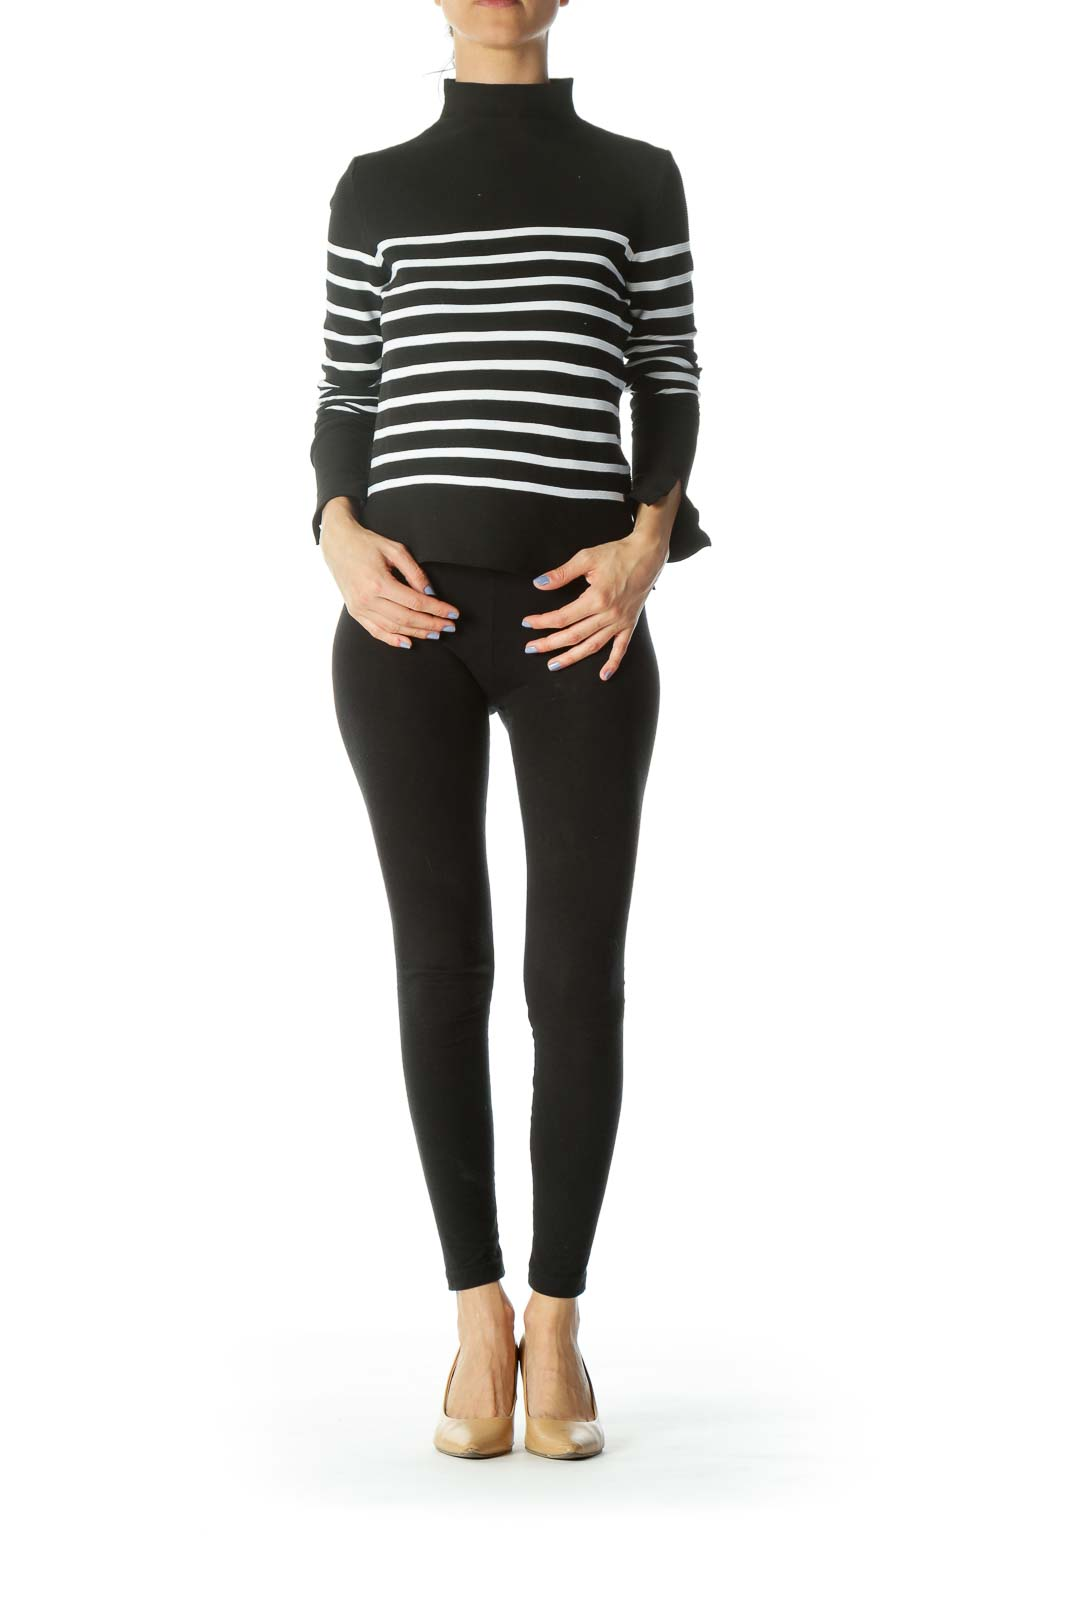 Black/White Striped High-Neck Textured Stretch Knit Top